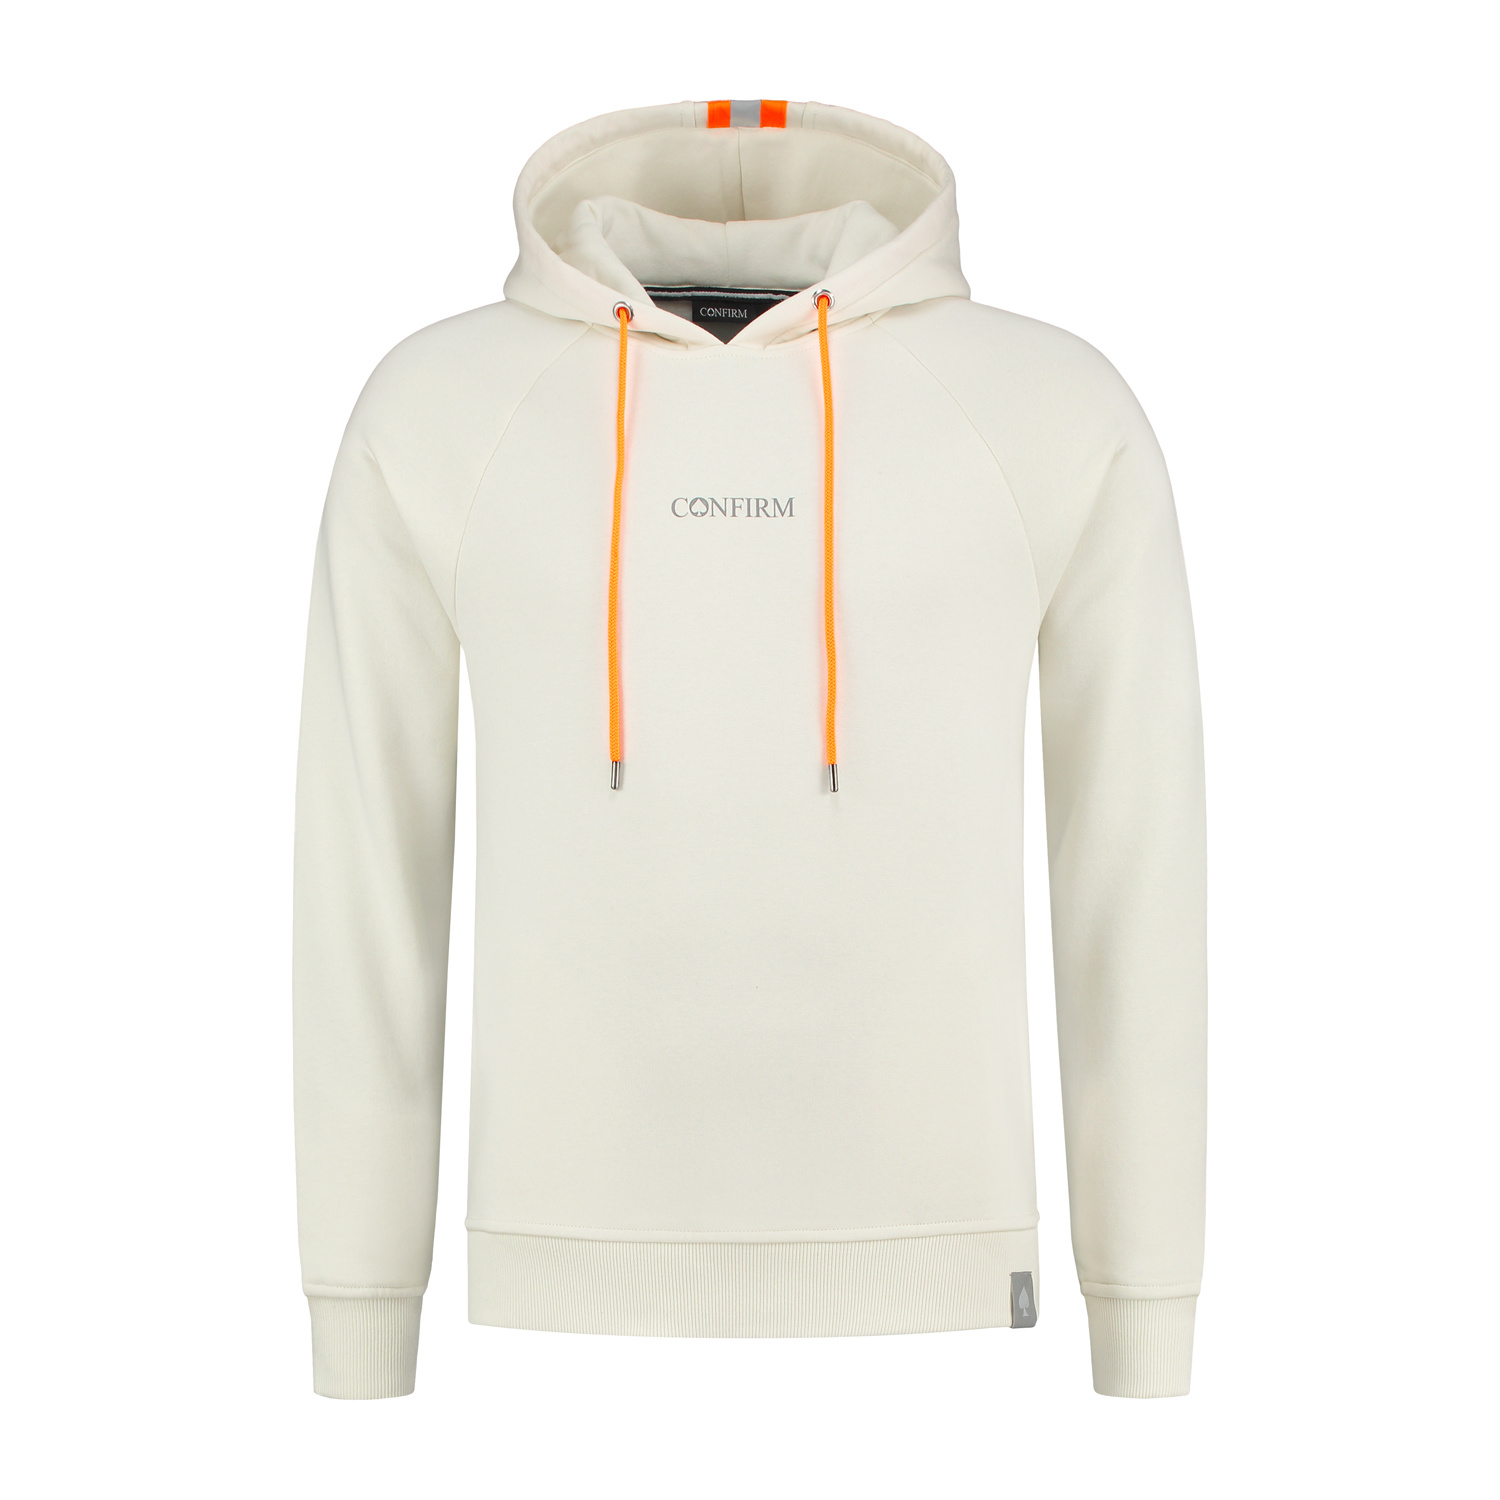 Confirm Fluor Reflective Hoodie - Offwhite-1